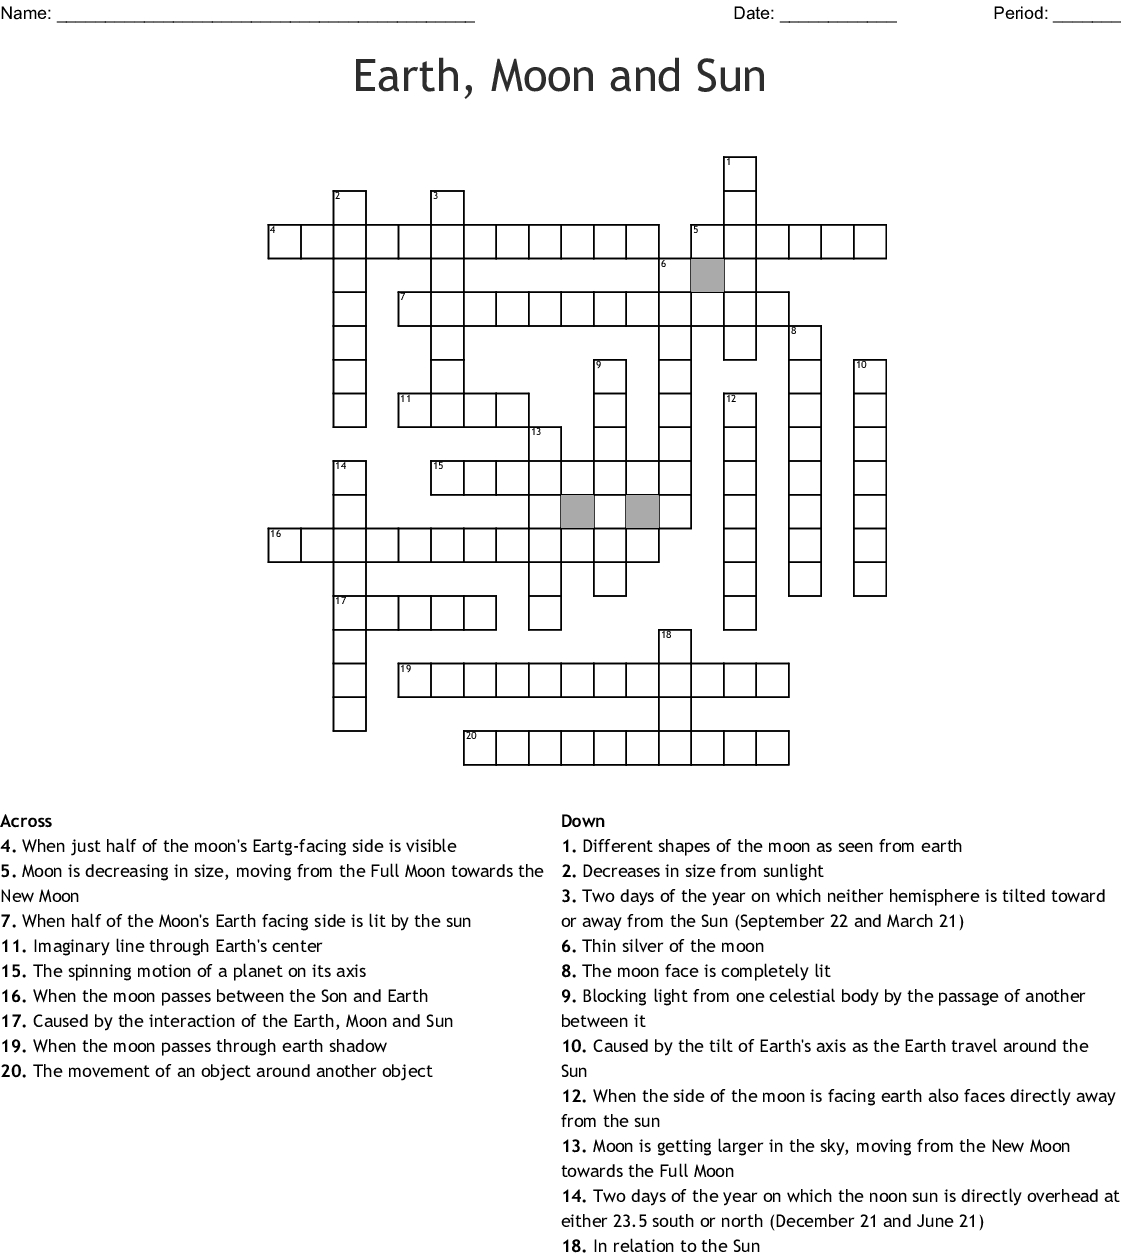 Earth, Moon And Sun Crossword - Wordmint - Sun Crossword Printable Version